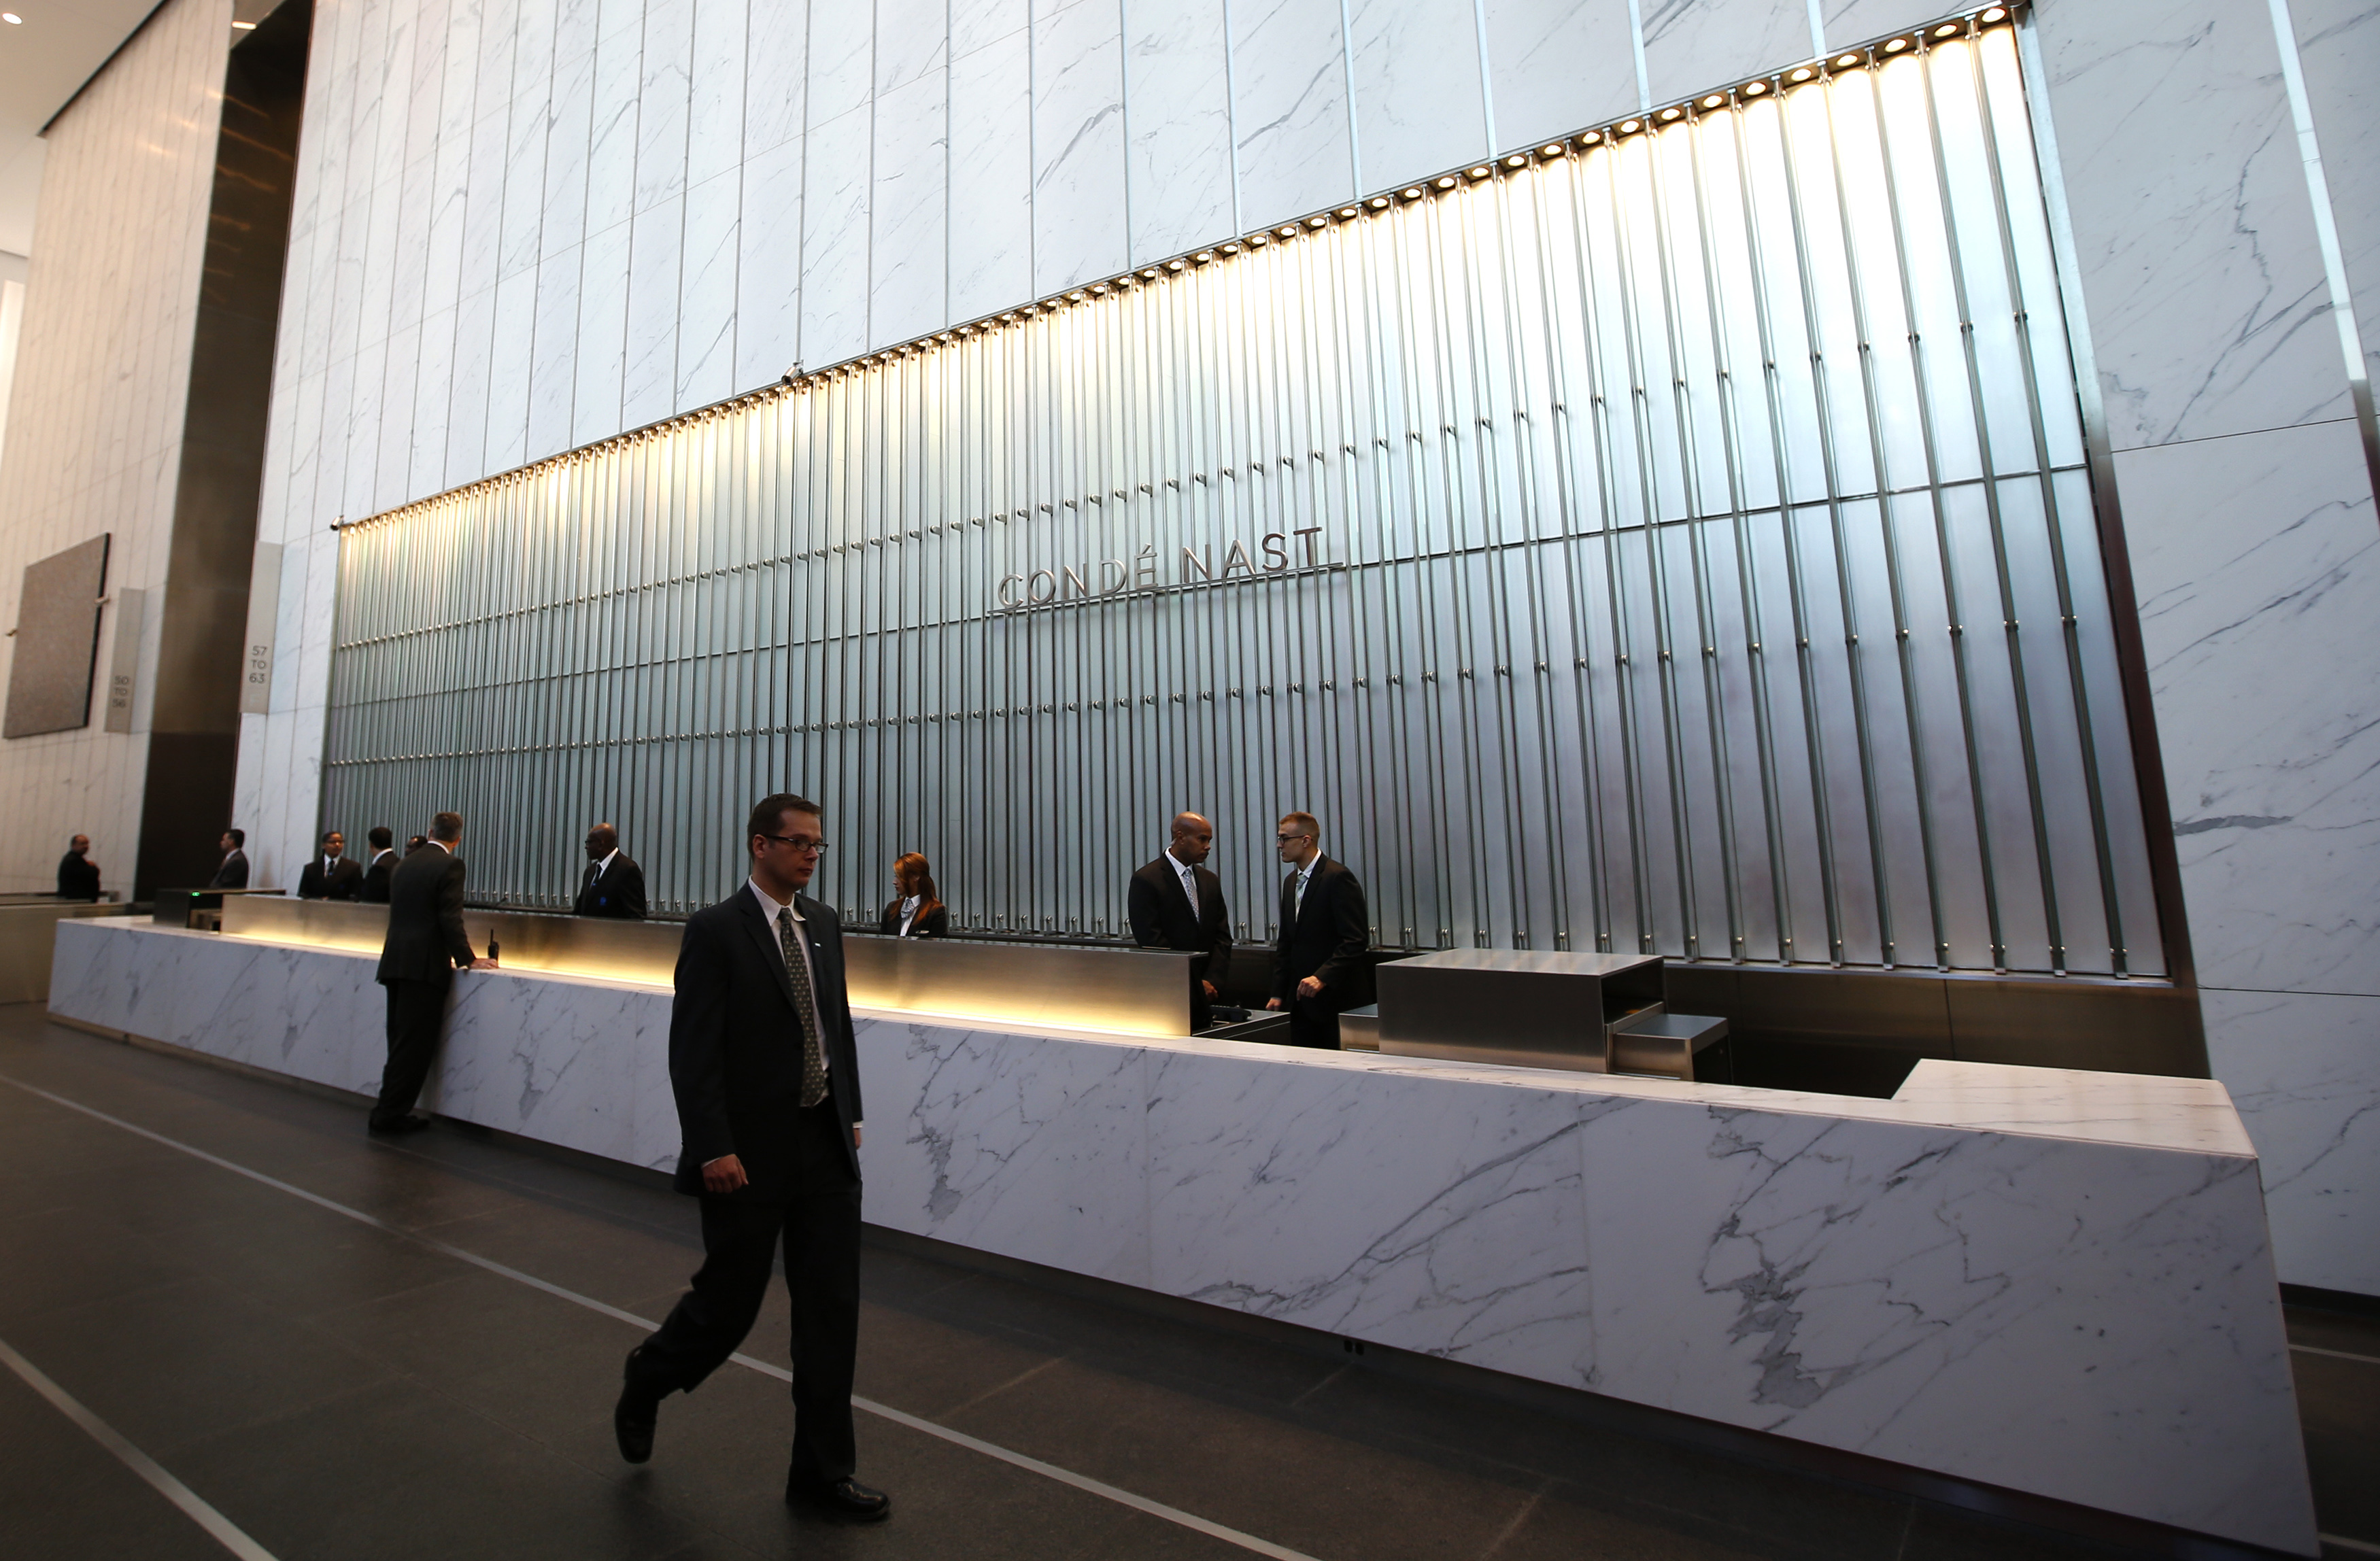 Conde Nast employees work in the lobby of the One World Trade Center tower in New York